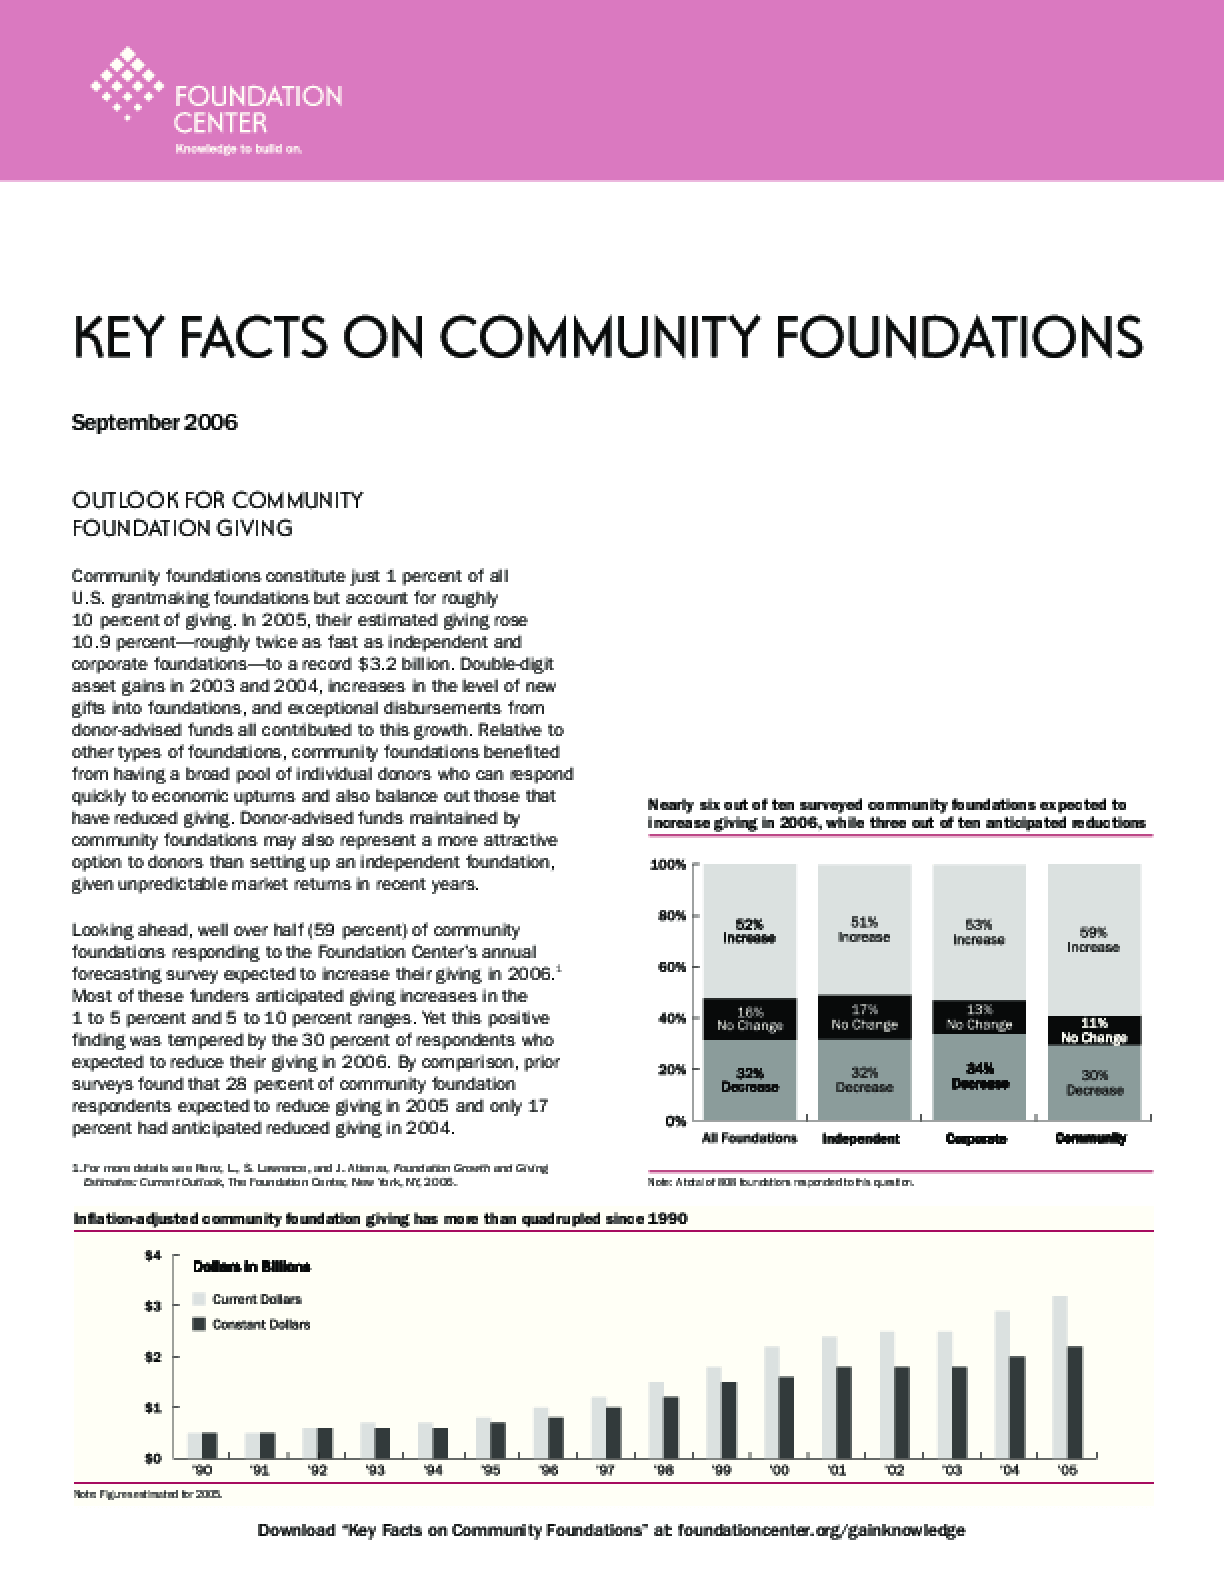 Key Facts on Community Foundations 2006